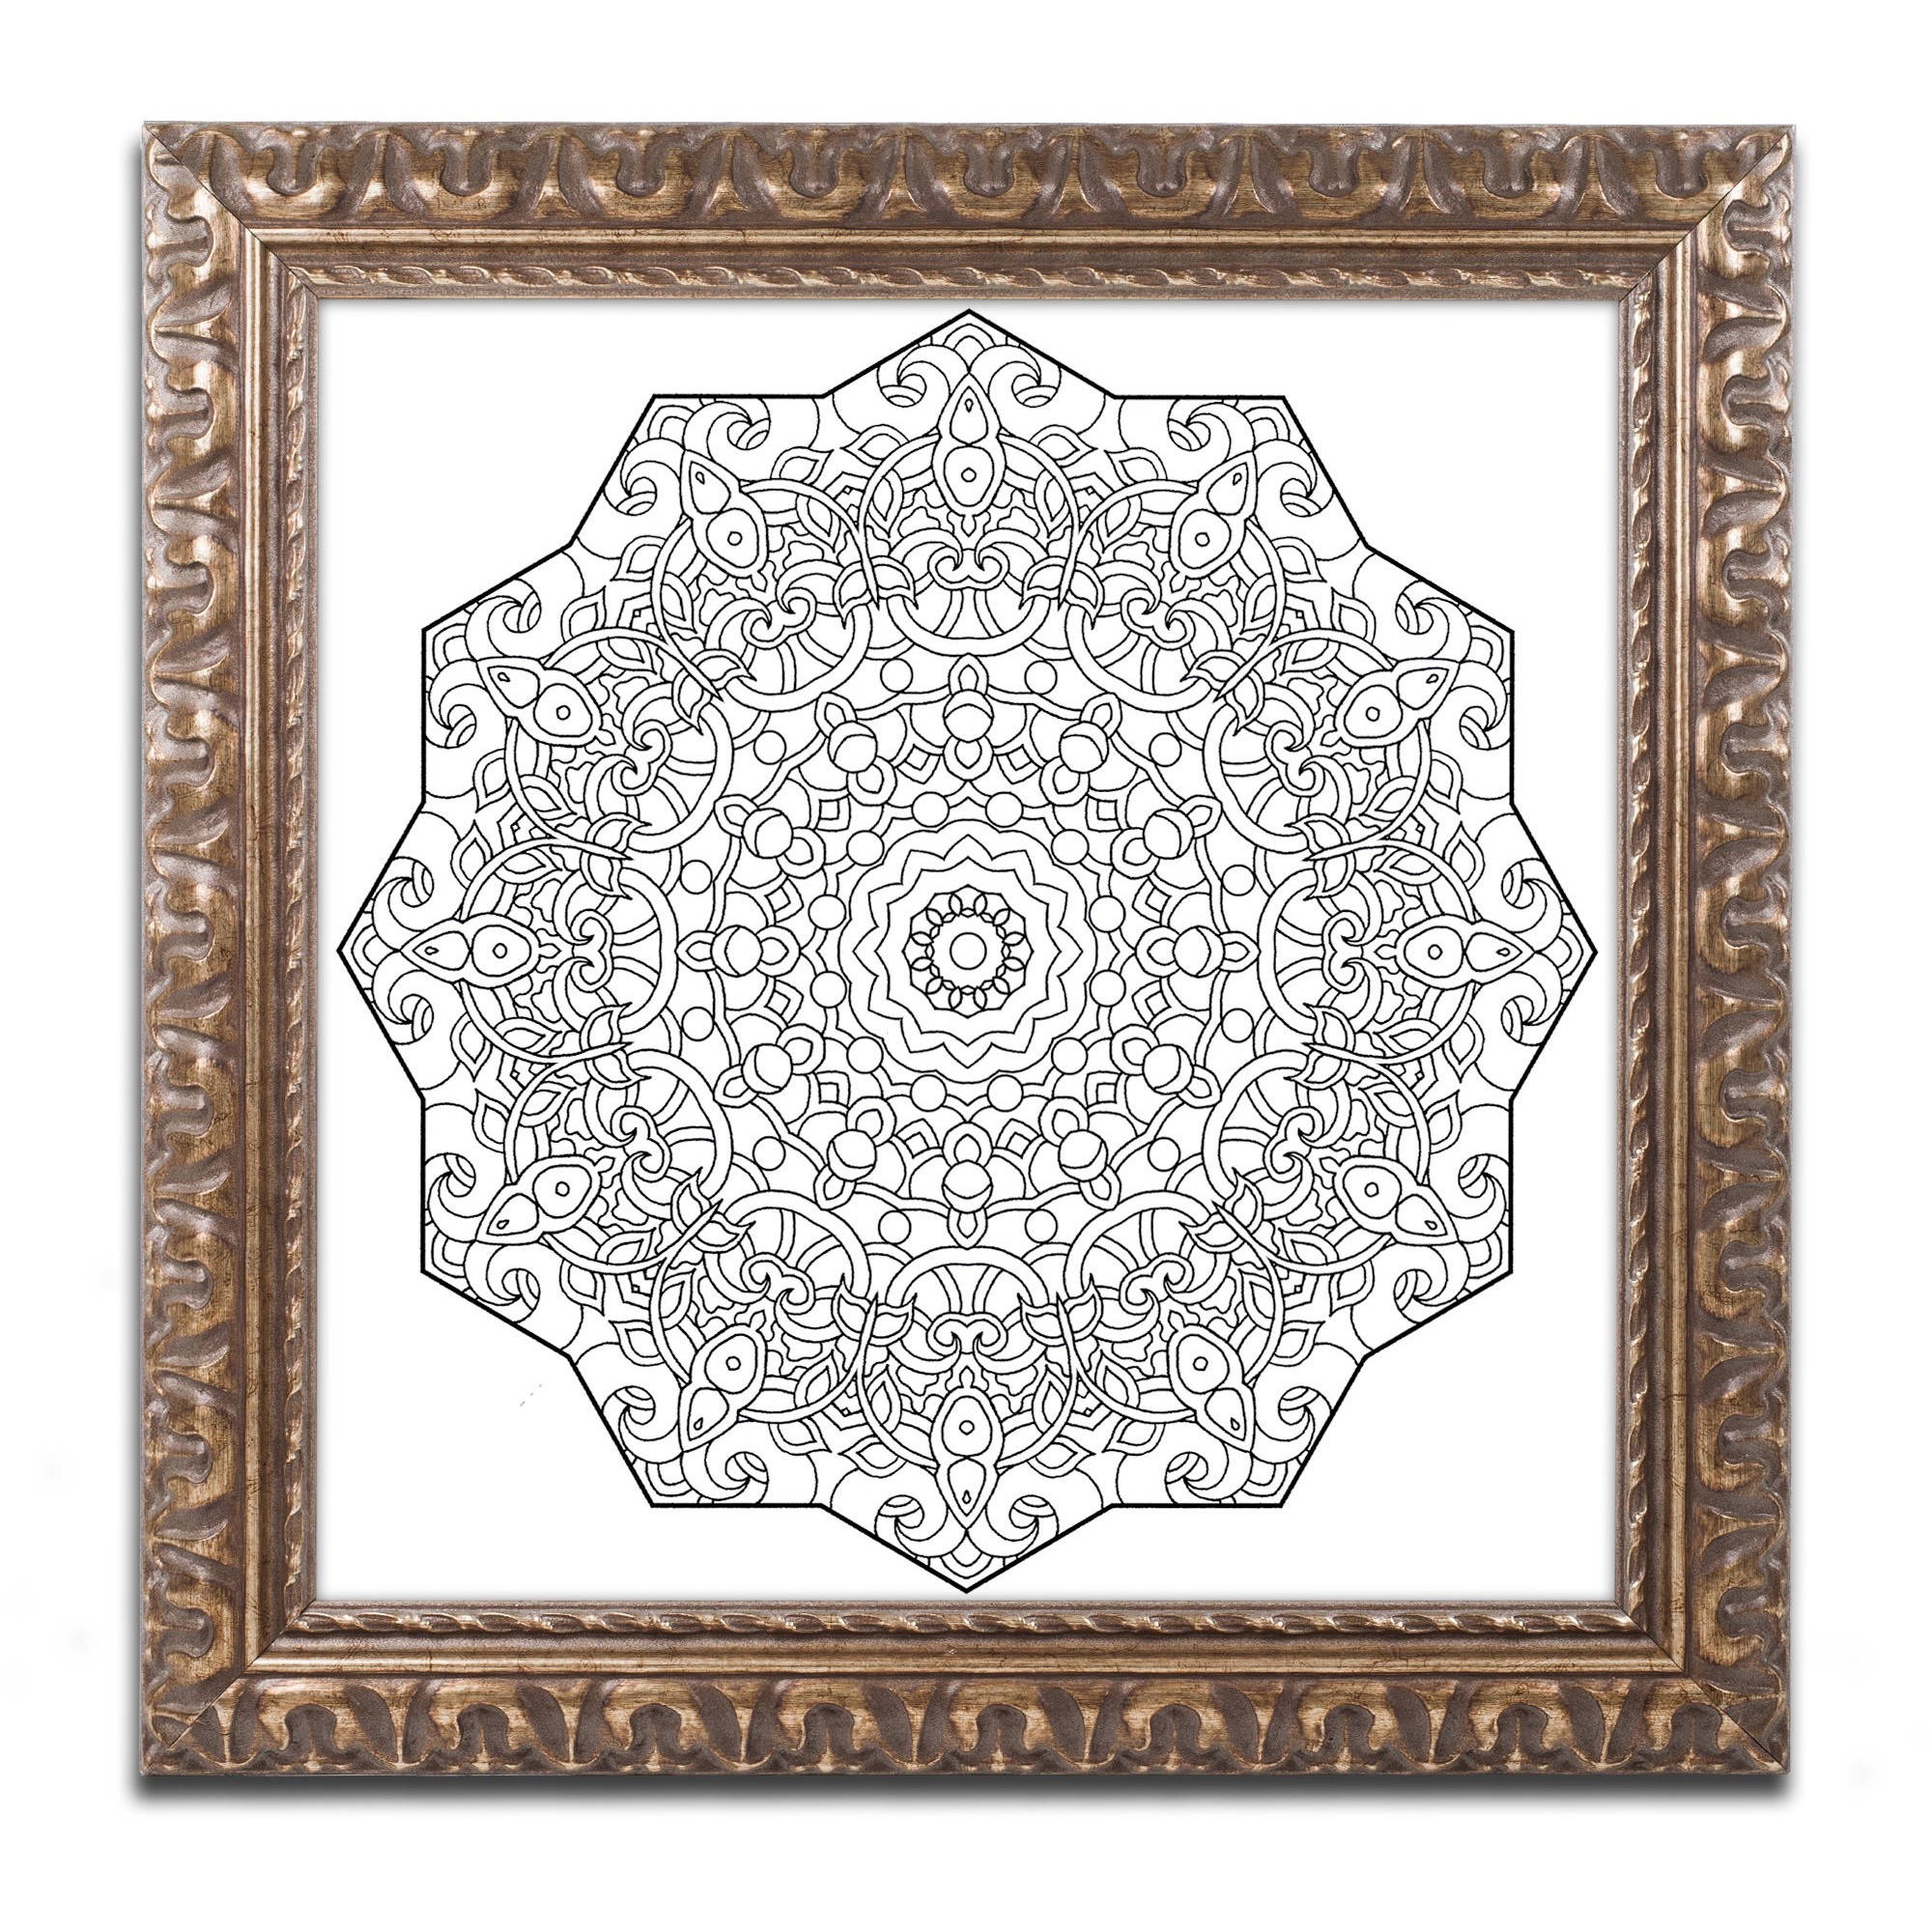 Trademark Global LLC Trademark Fine Art Mixed Coloring Book 28 Canvas Art by Kathy G. Ahrens, Gold Ornate Frame